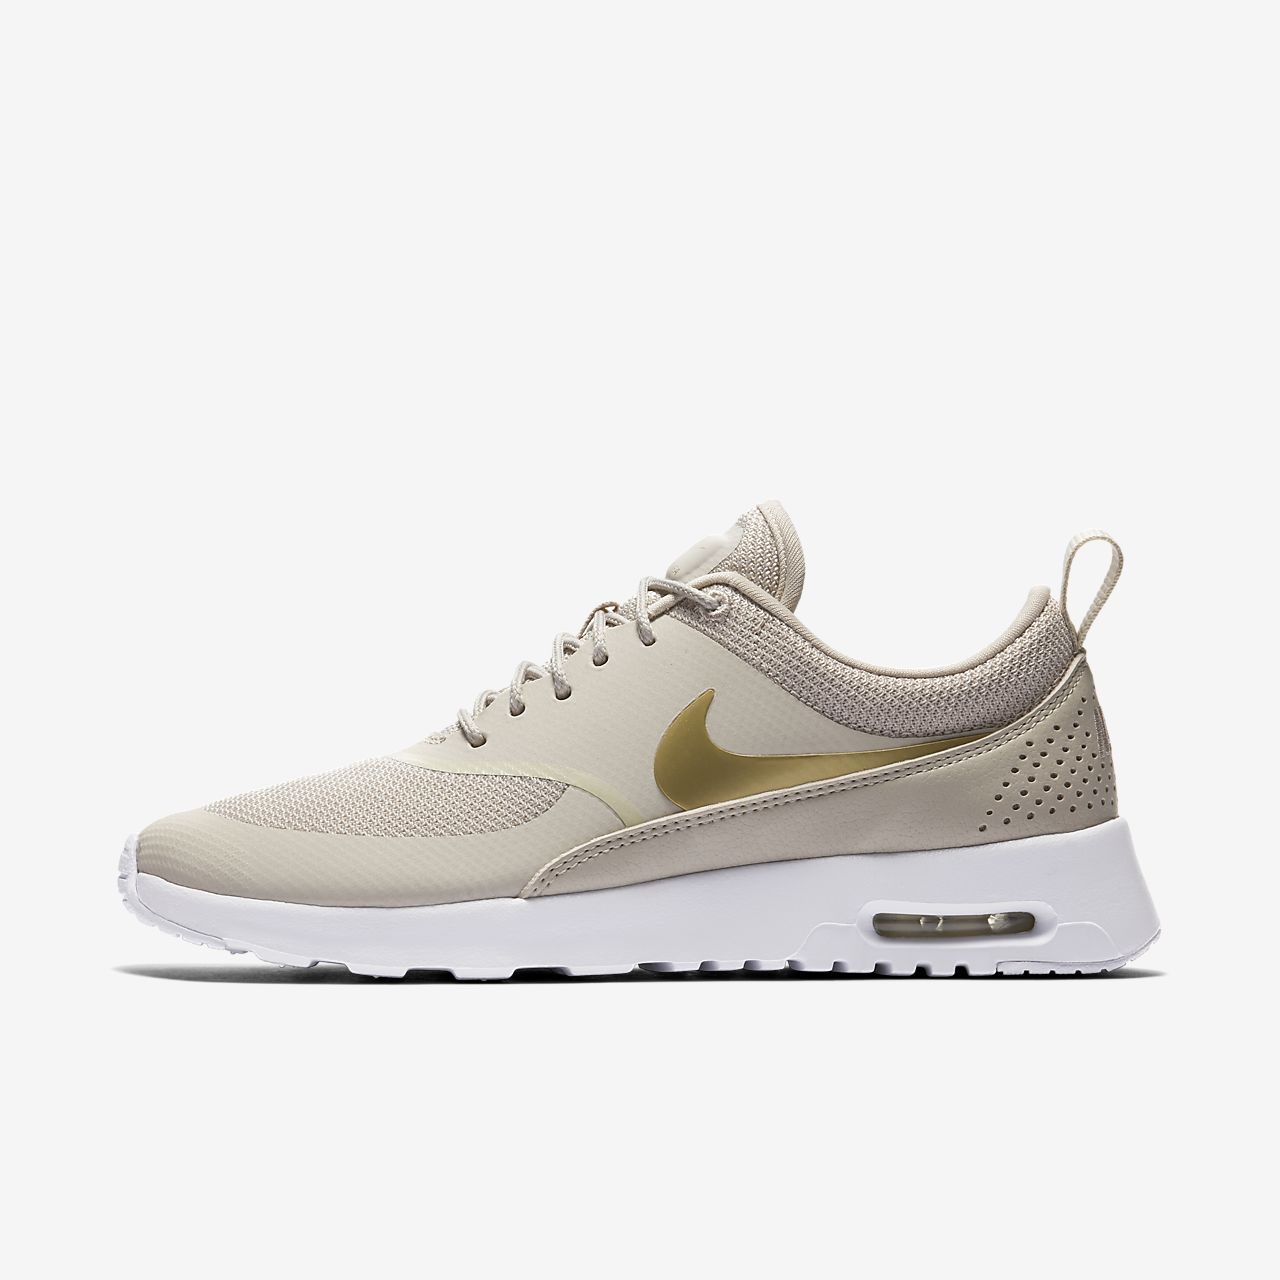 nike women's air max thea shoe